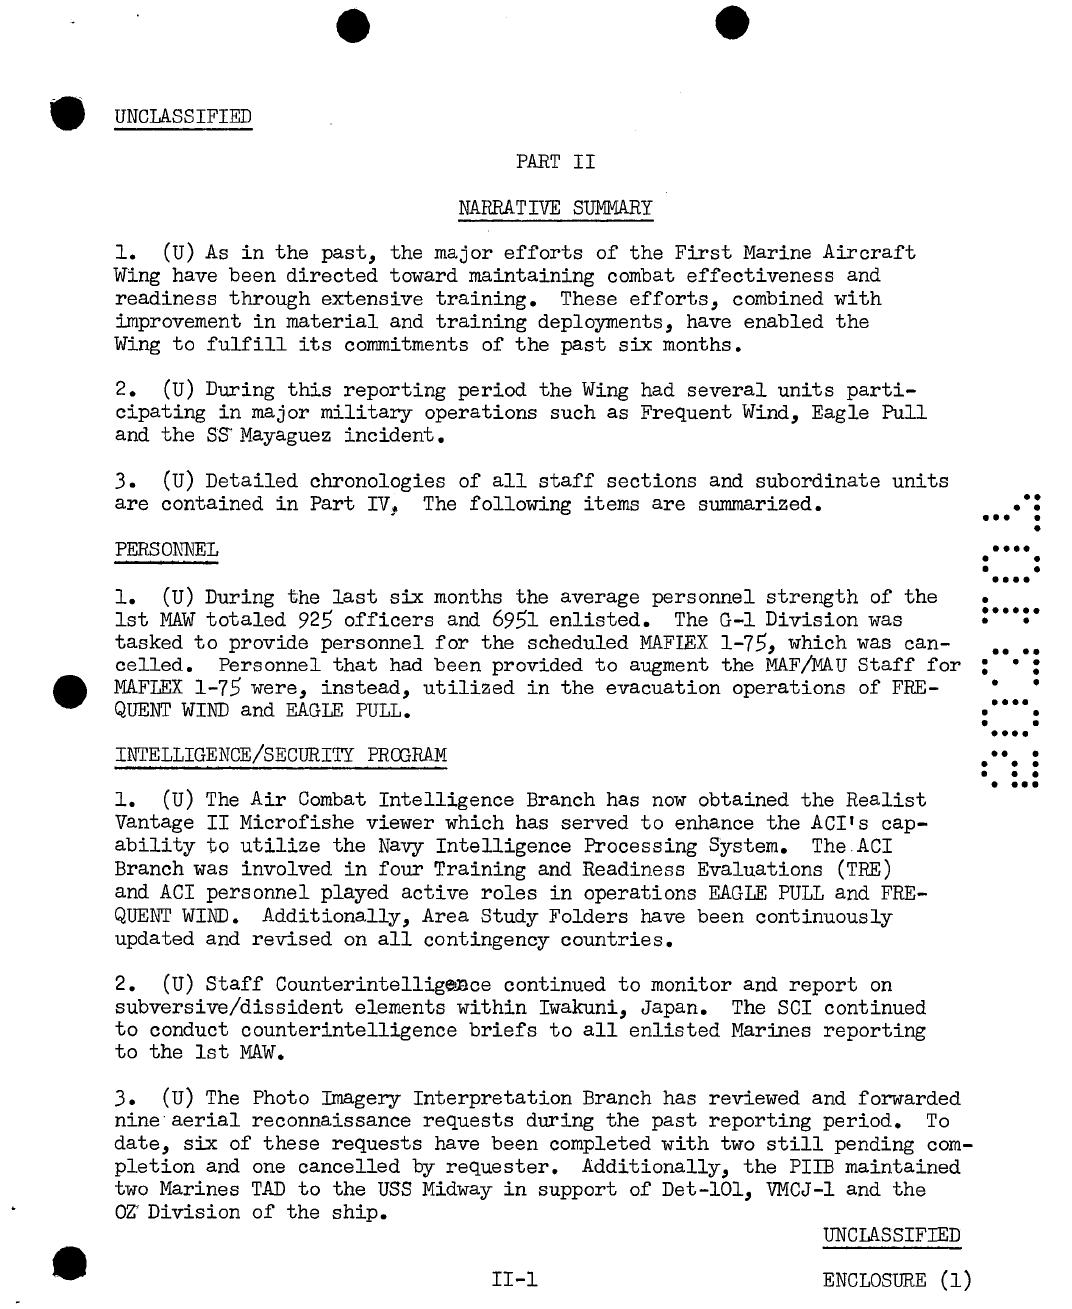 Vietnam-War-1st-Marine-Corp-Aircraft-Wing-Command-Activit- Reports-Page-7